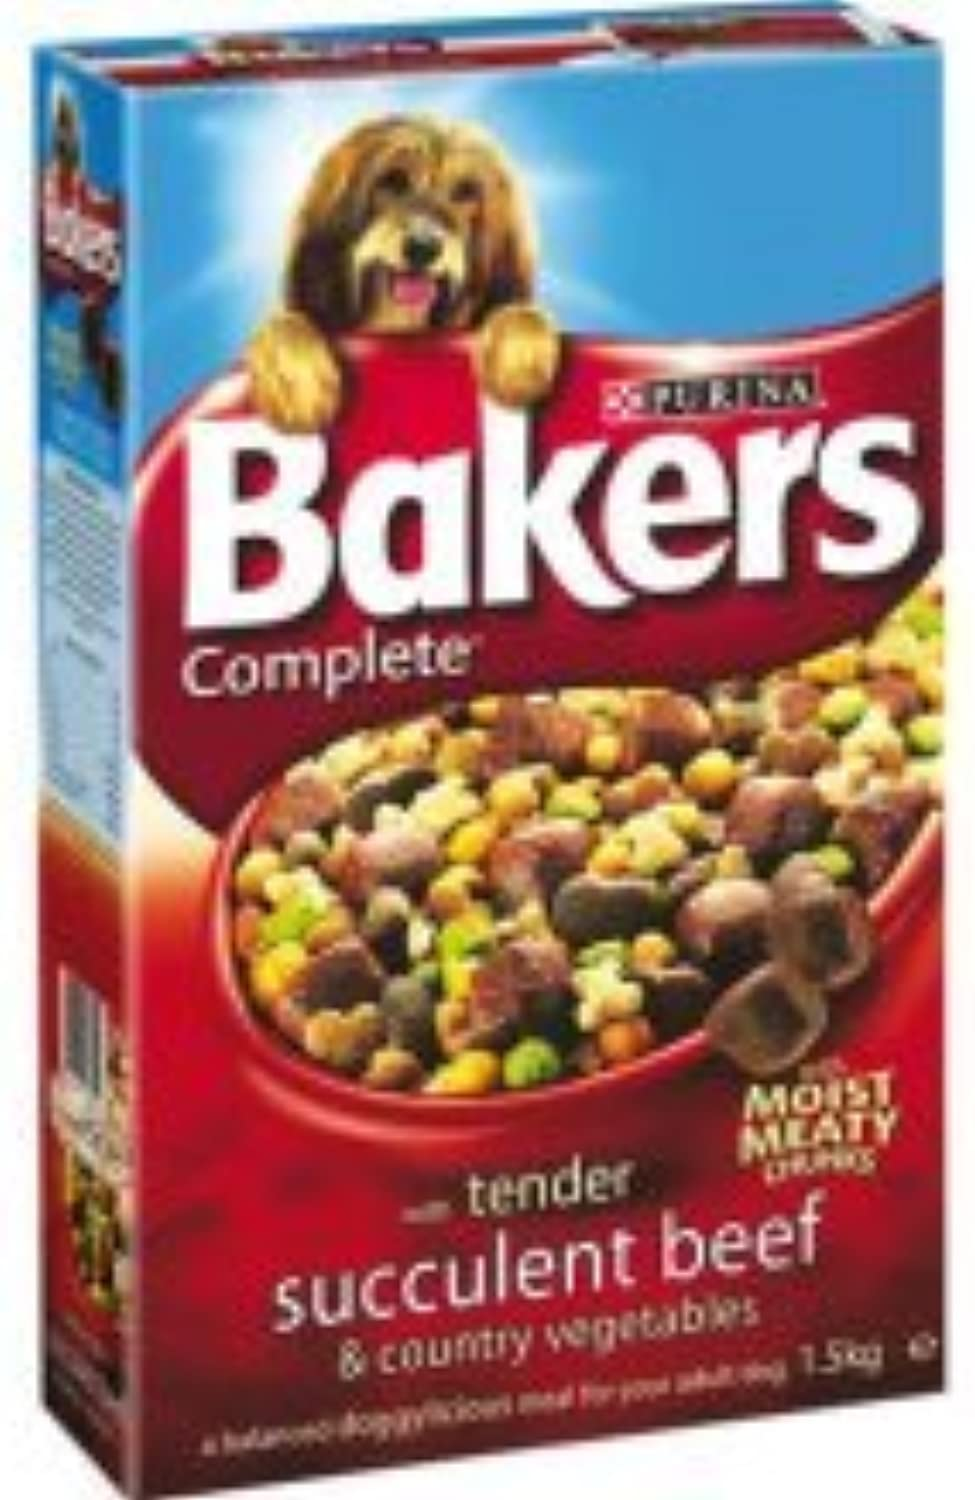 Bakers Complete With Tasty Beef and Country Vegetables 8x1.5kg Packs